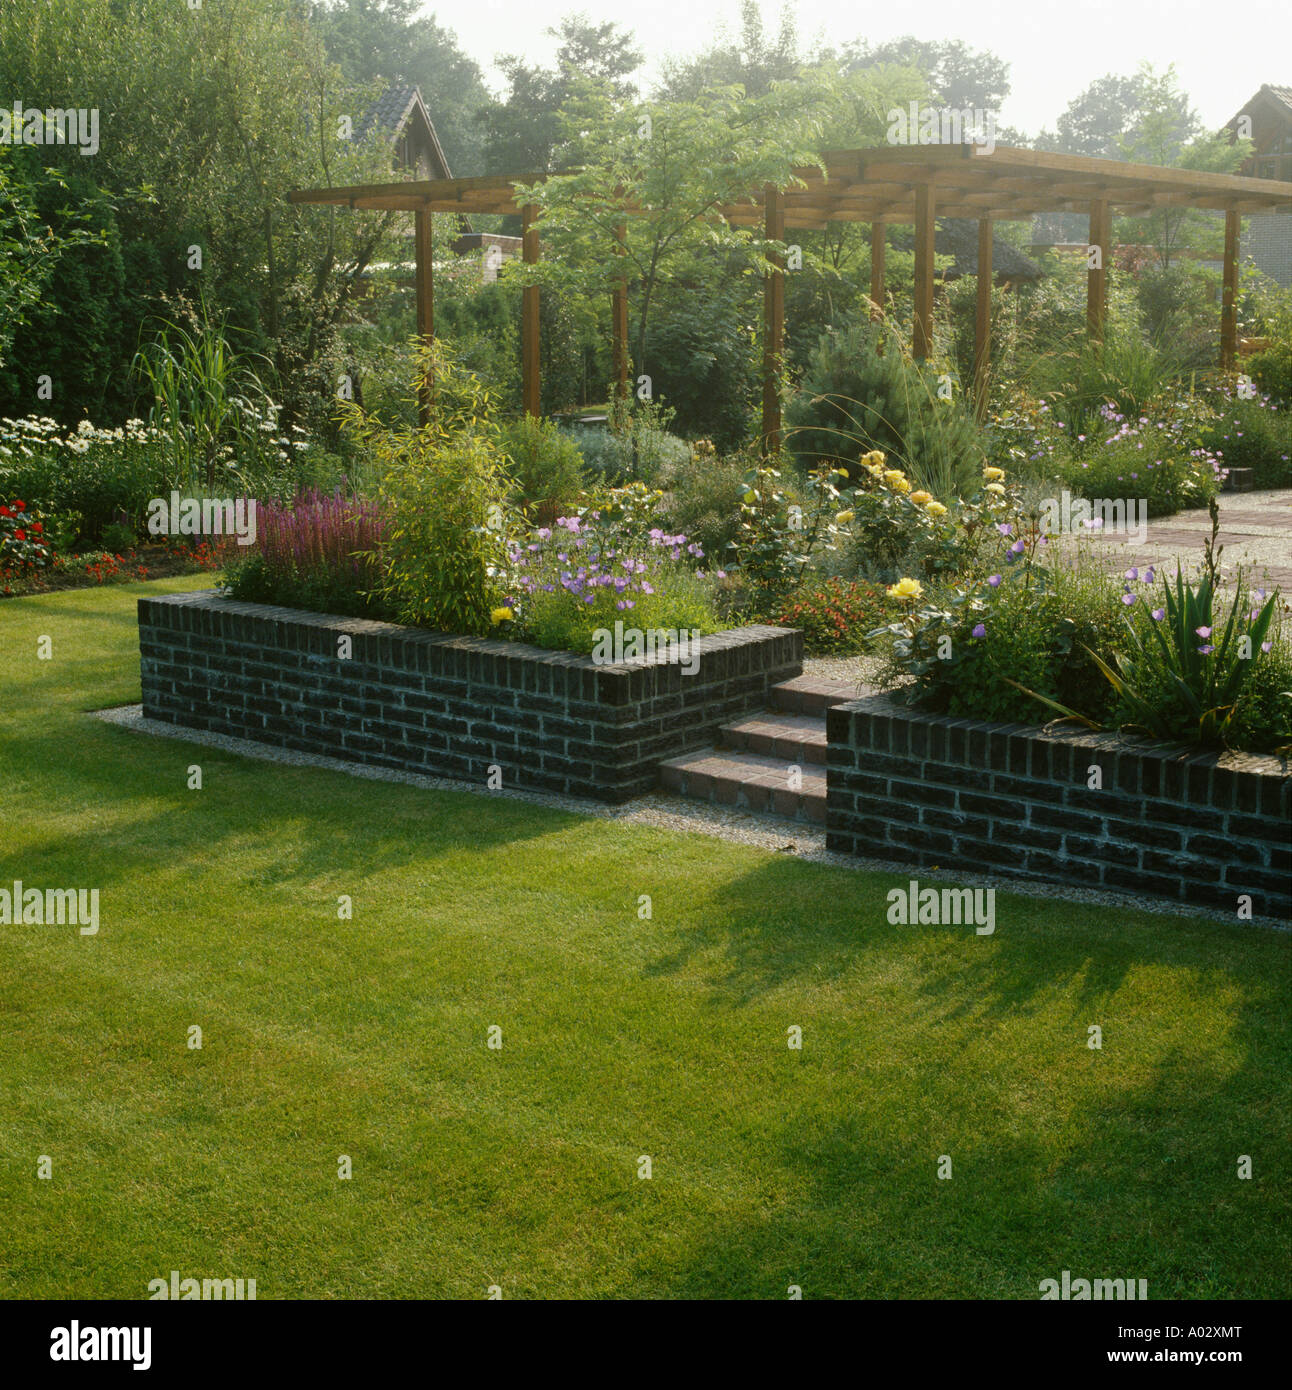 Suburban Lawn Garden: View From The Lawn Of A Suburban Garden Over Raised Beds